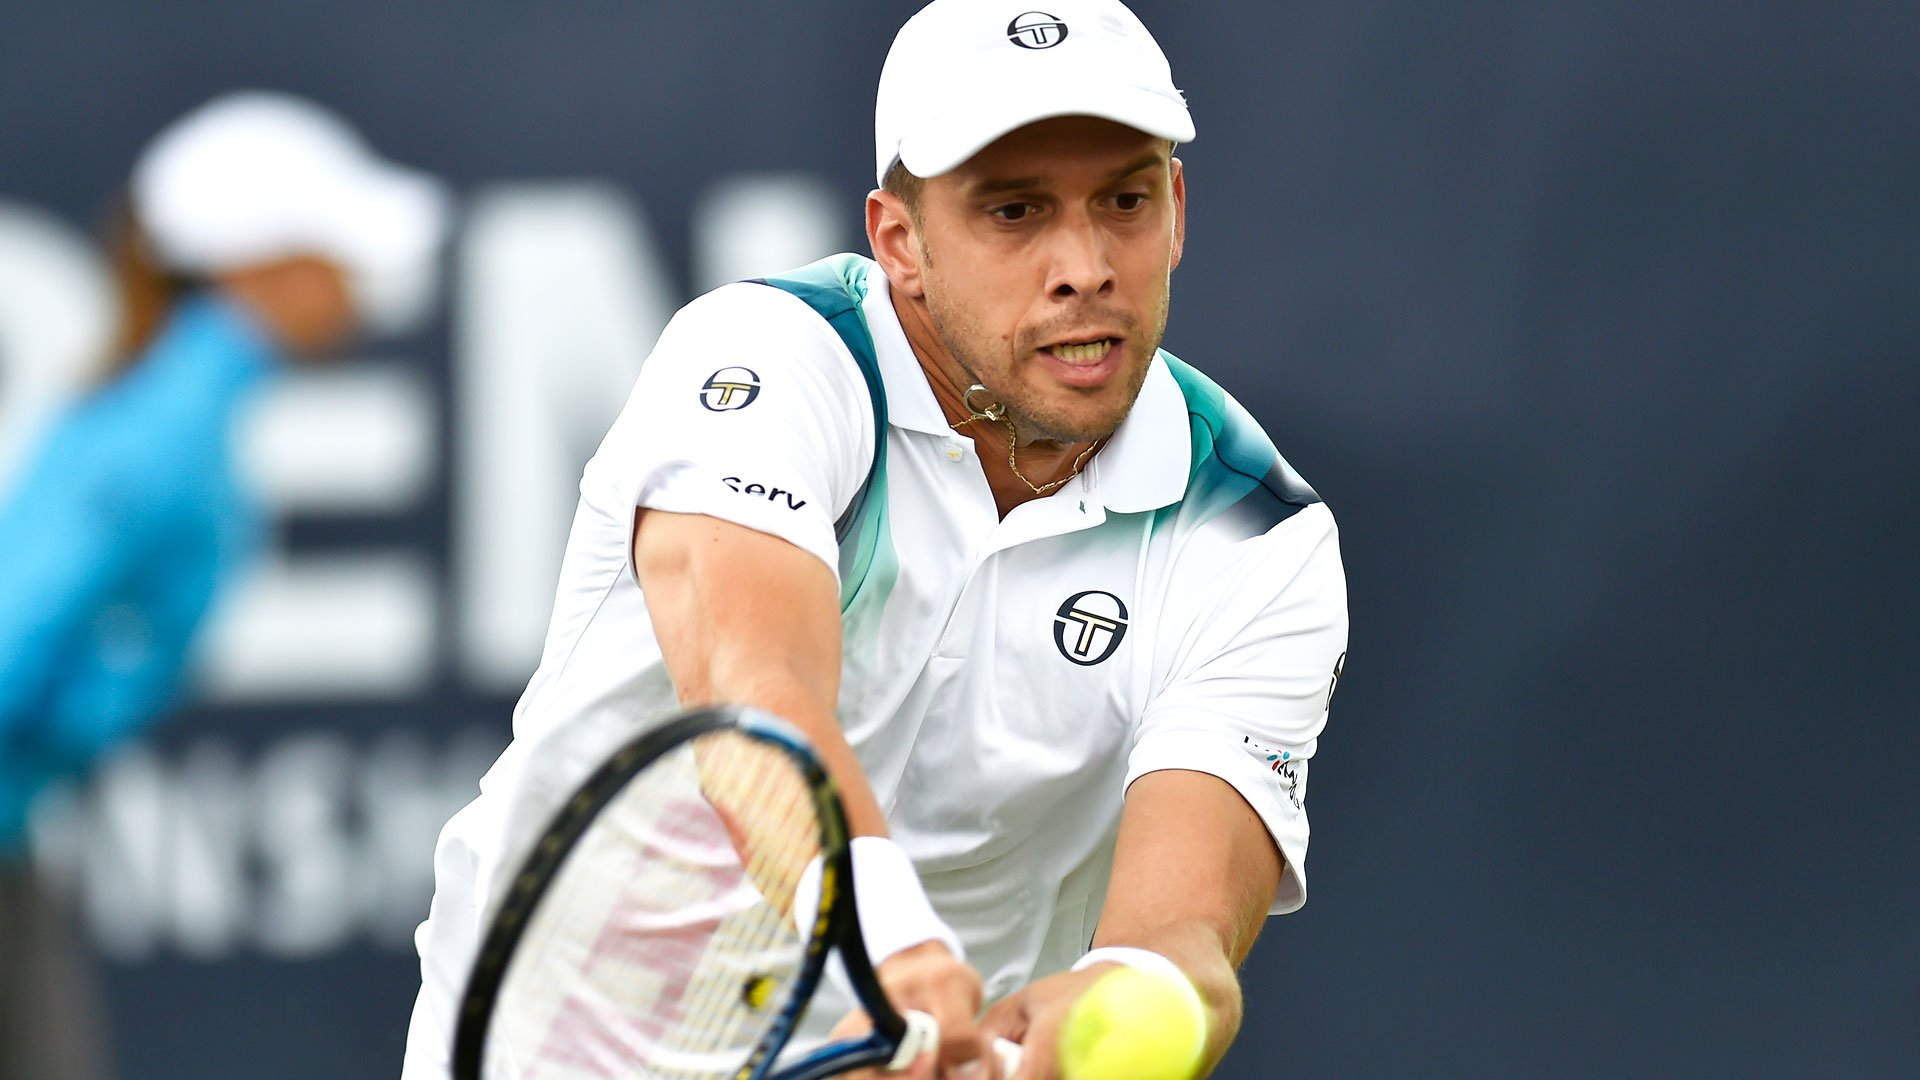 Gilles Muller upsets Alexander Zverev to reach another final at the @RicohOpen. Read: https://t.co/lE8lyhvaad https://t.co/mElmNXa3Xh